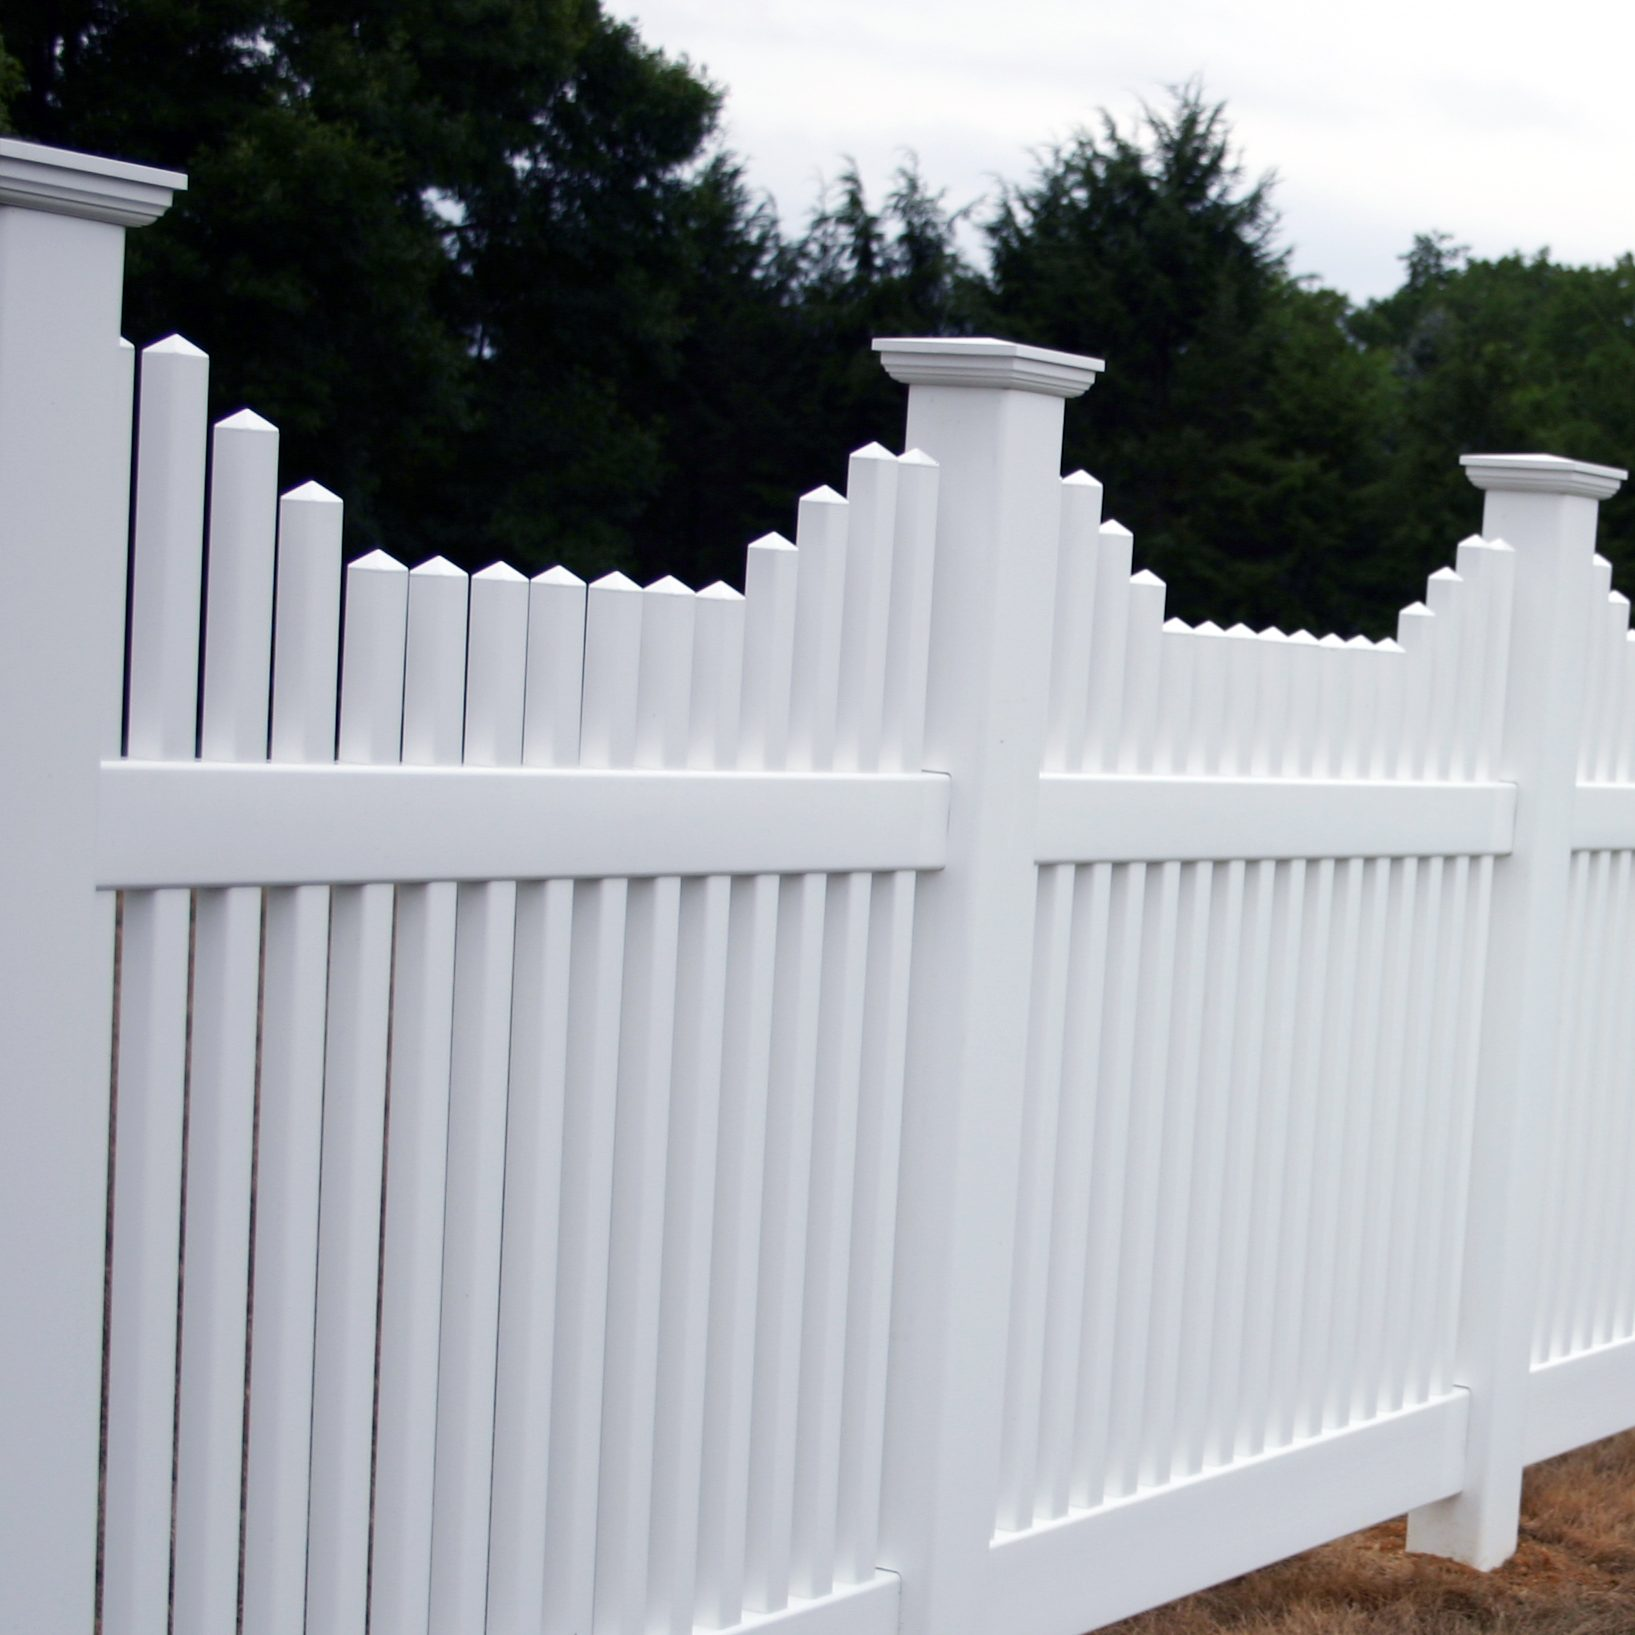 Vinyl Picket Fencing - Superior Plastic Products